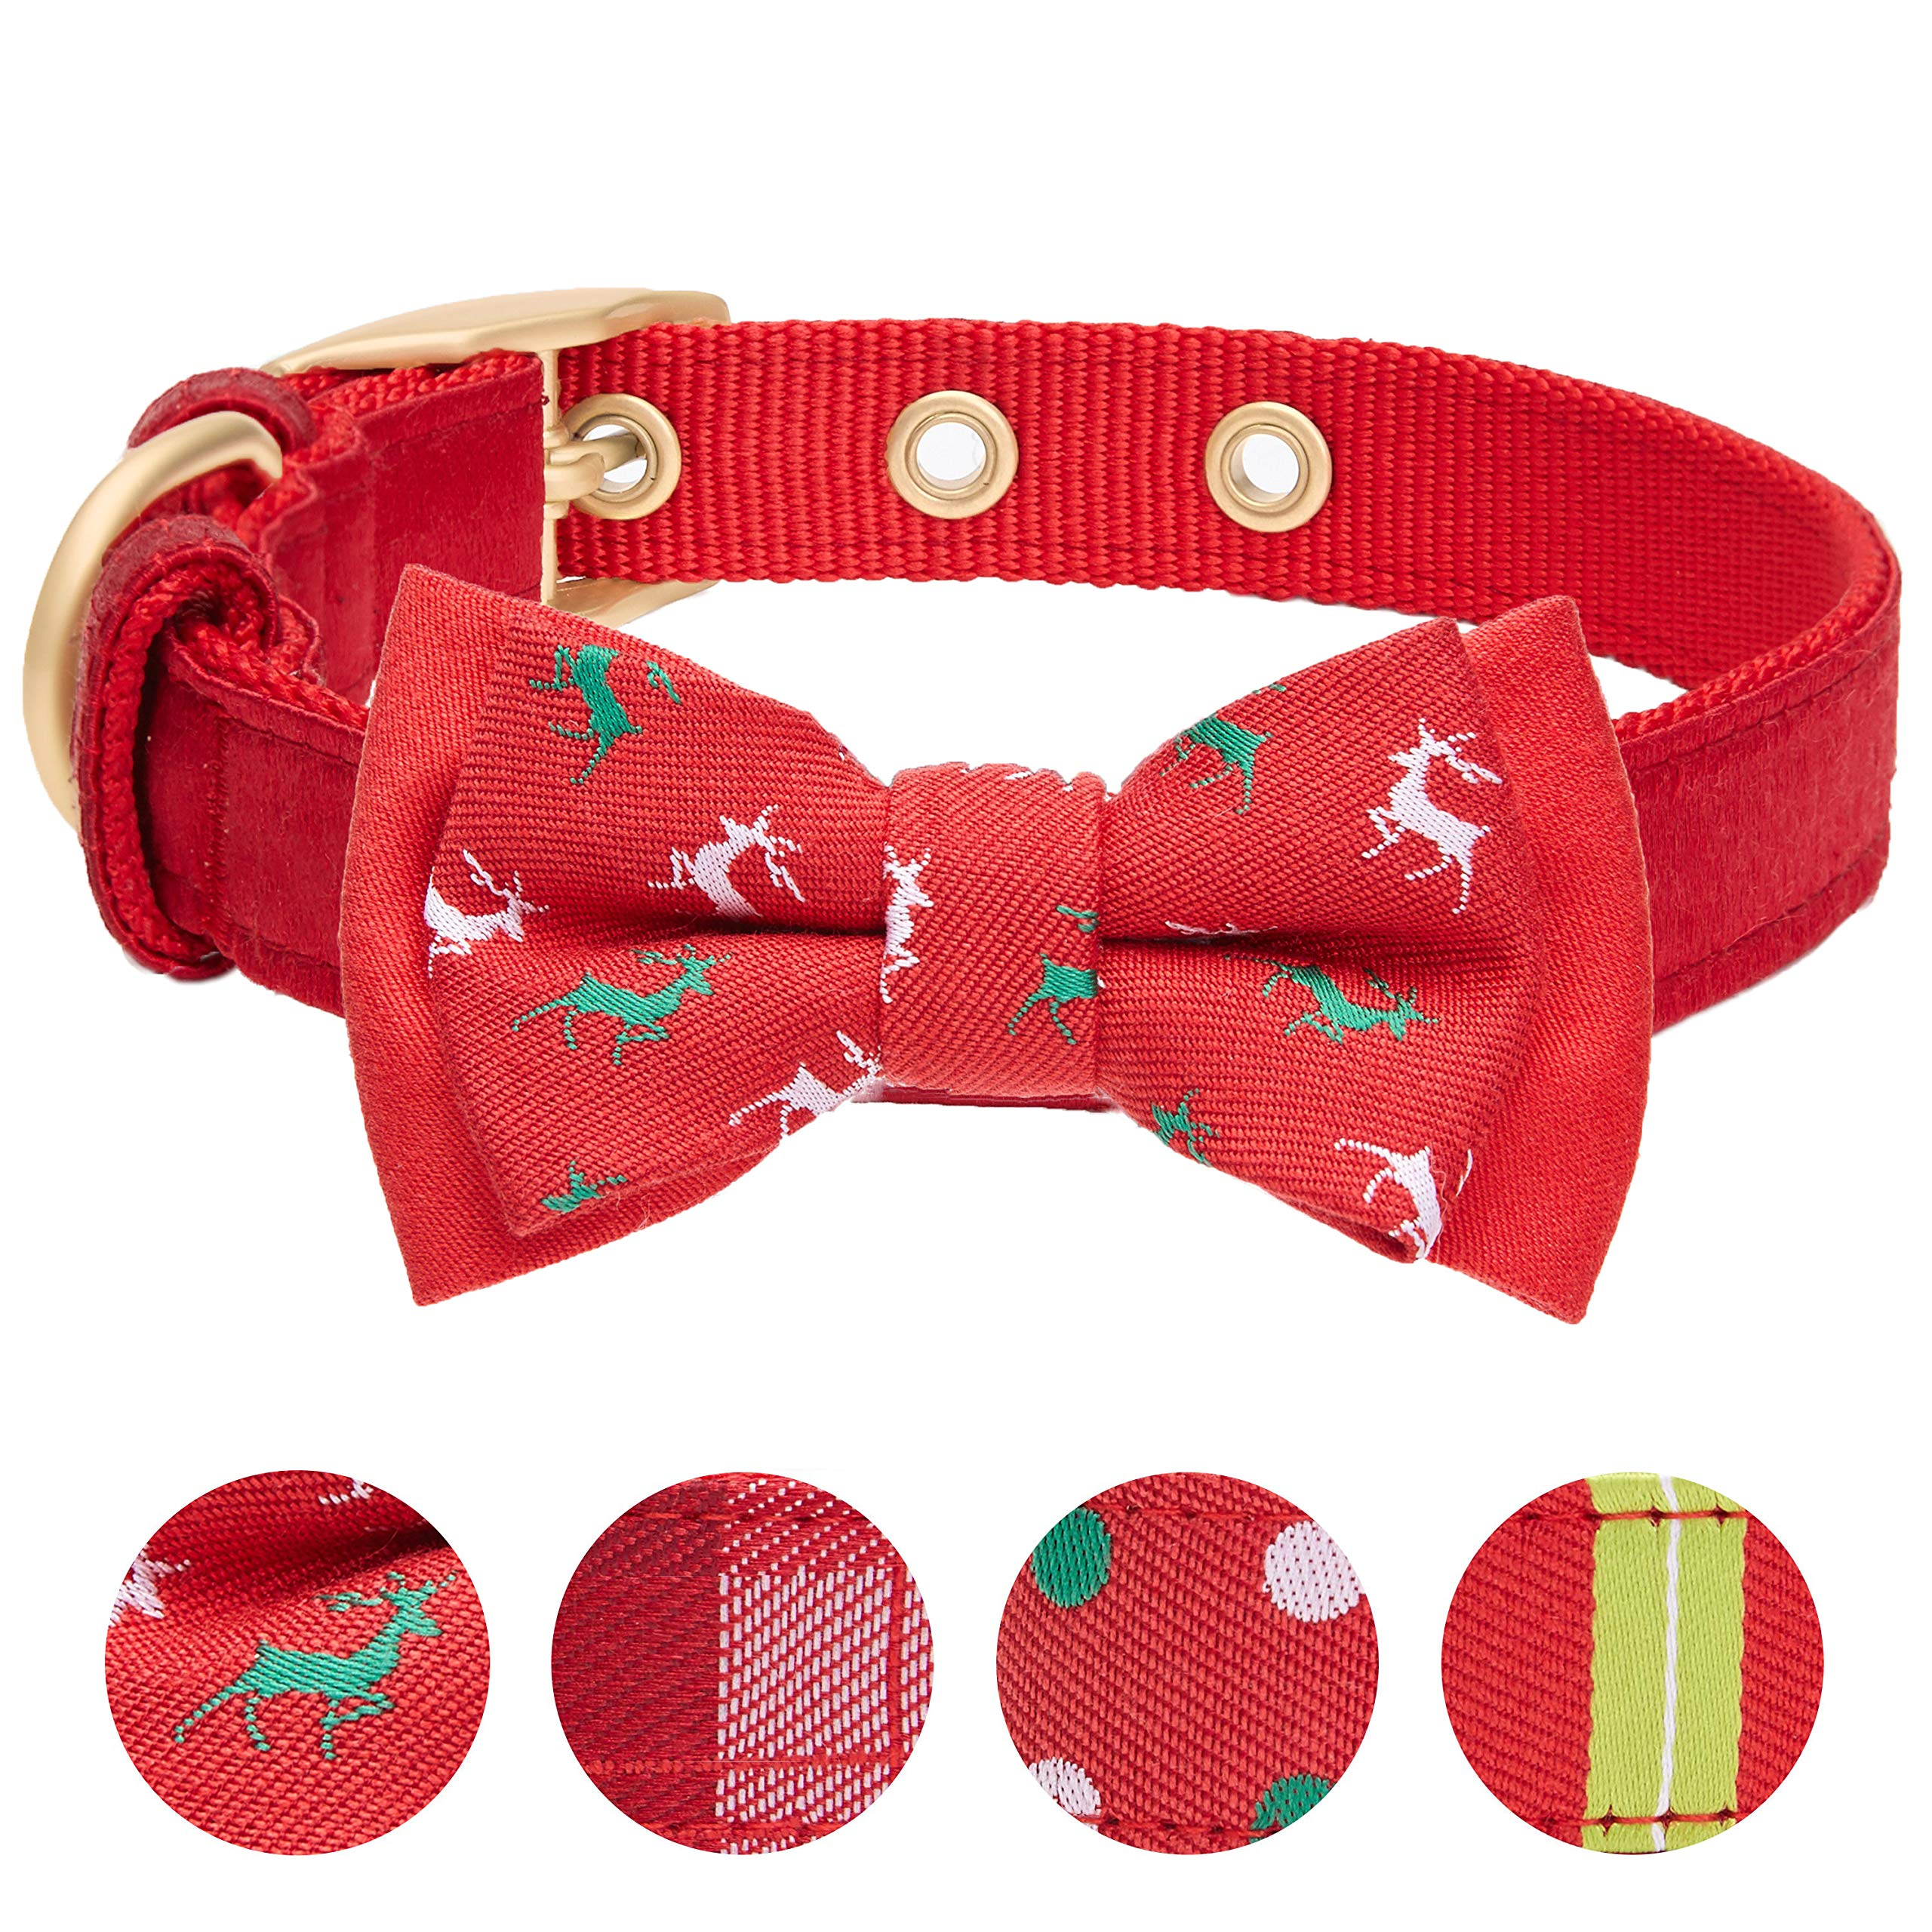 Blueberry Pet 4 Patterns Luxurious Christams Festival Reindeer Dog Collar with Detachable Bowtie, Medium, Neck 13-16.5'', Adjustable Collars for Dogs